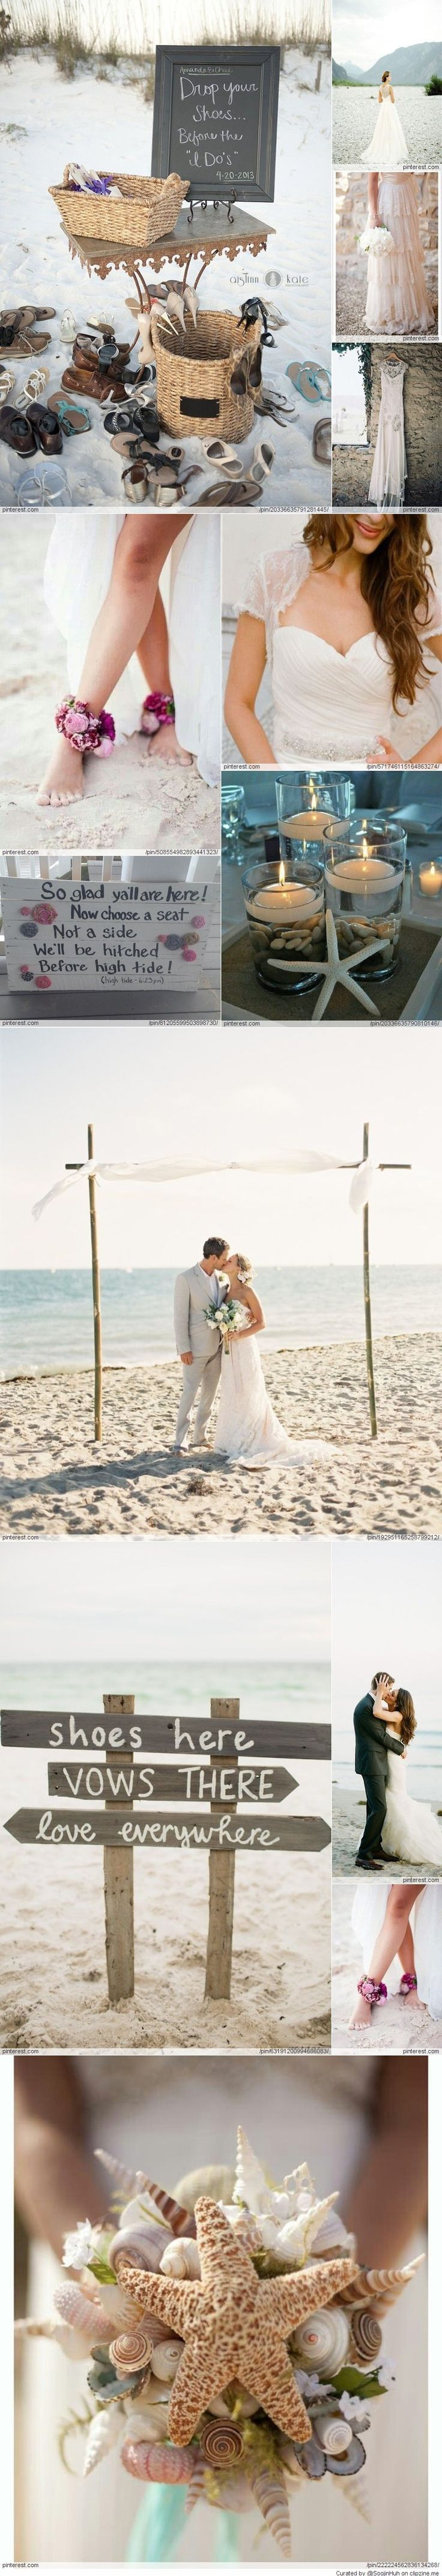 Beach Wedding.  If you want the best officiant for your Outer Banks, NC, ceremony, contact Rev. Barbara Mulford: myobxofficiant.com/